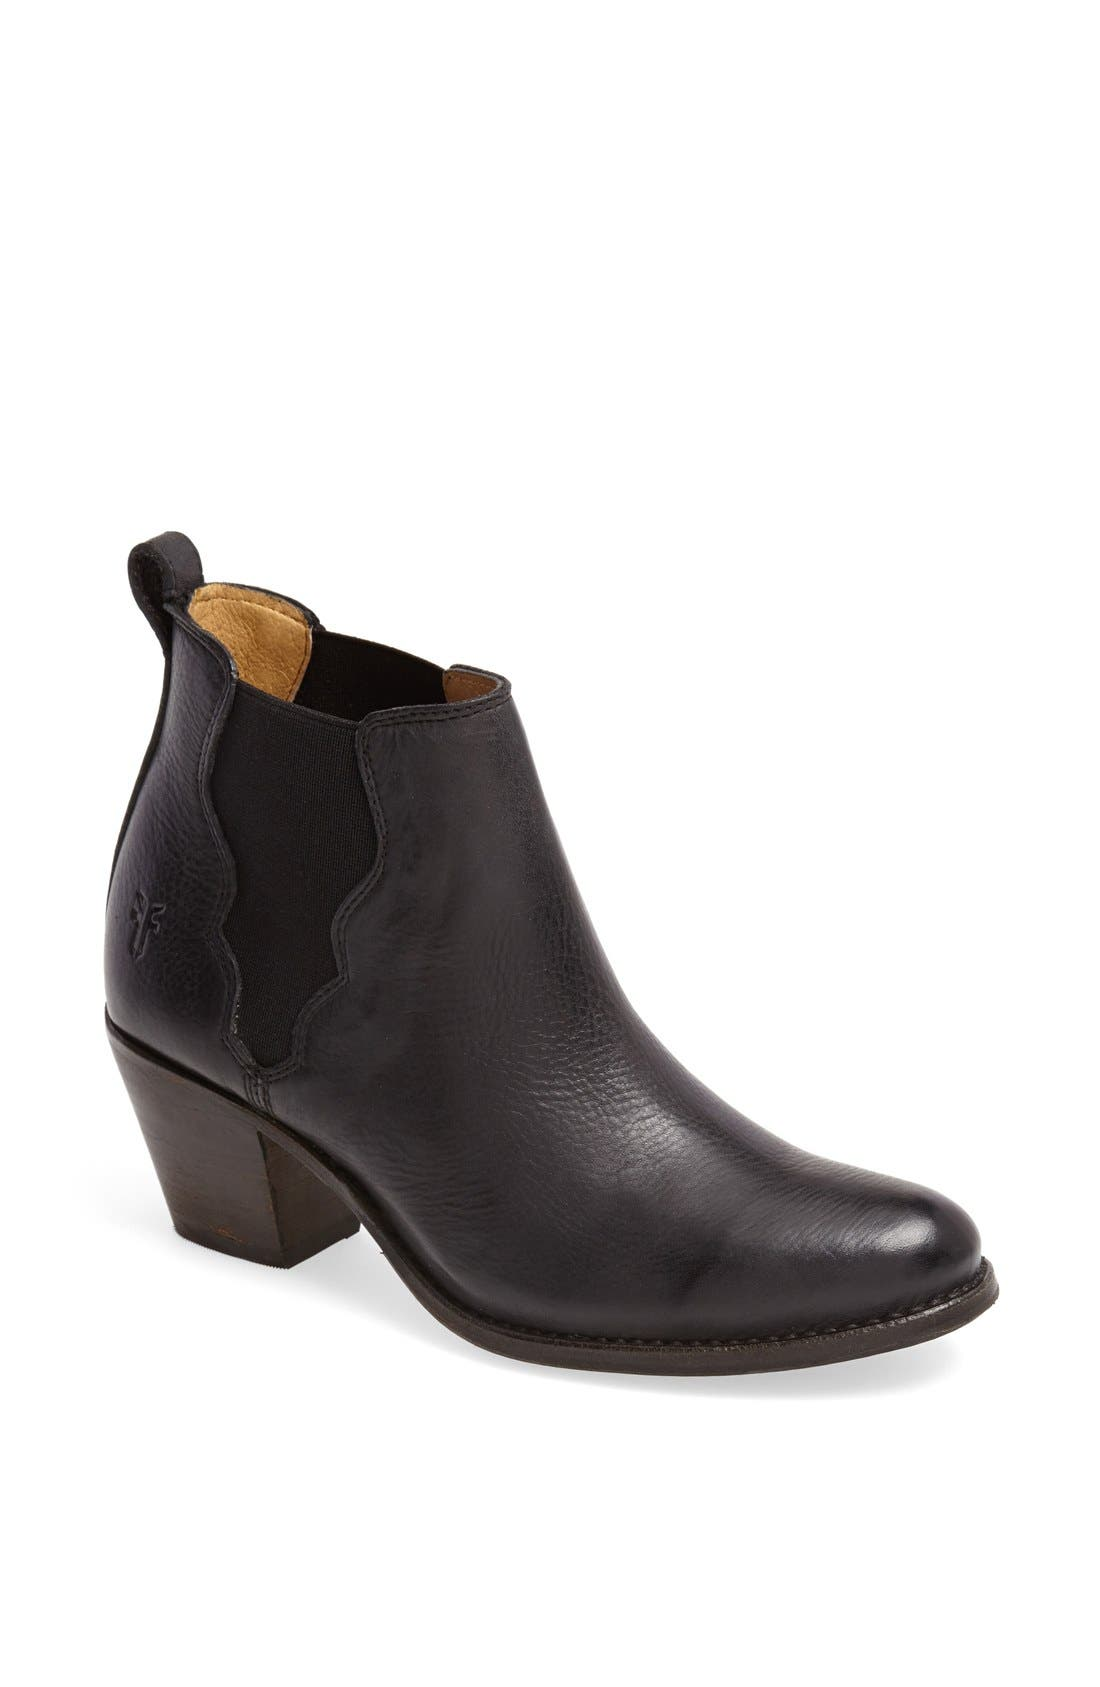 Alternate Image 1 Selected - Frye 'Jackie' Leather Ankle Boot (Women)